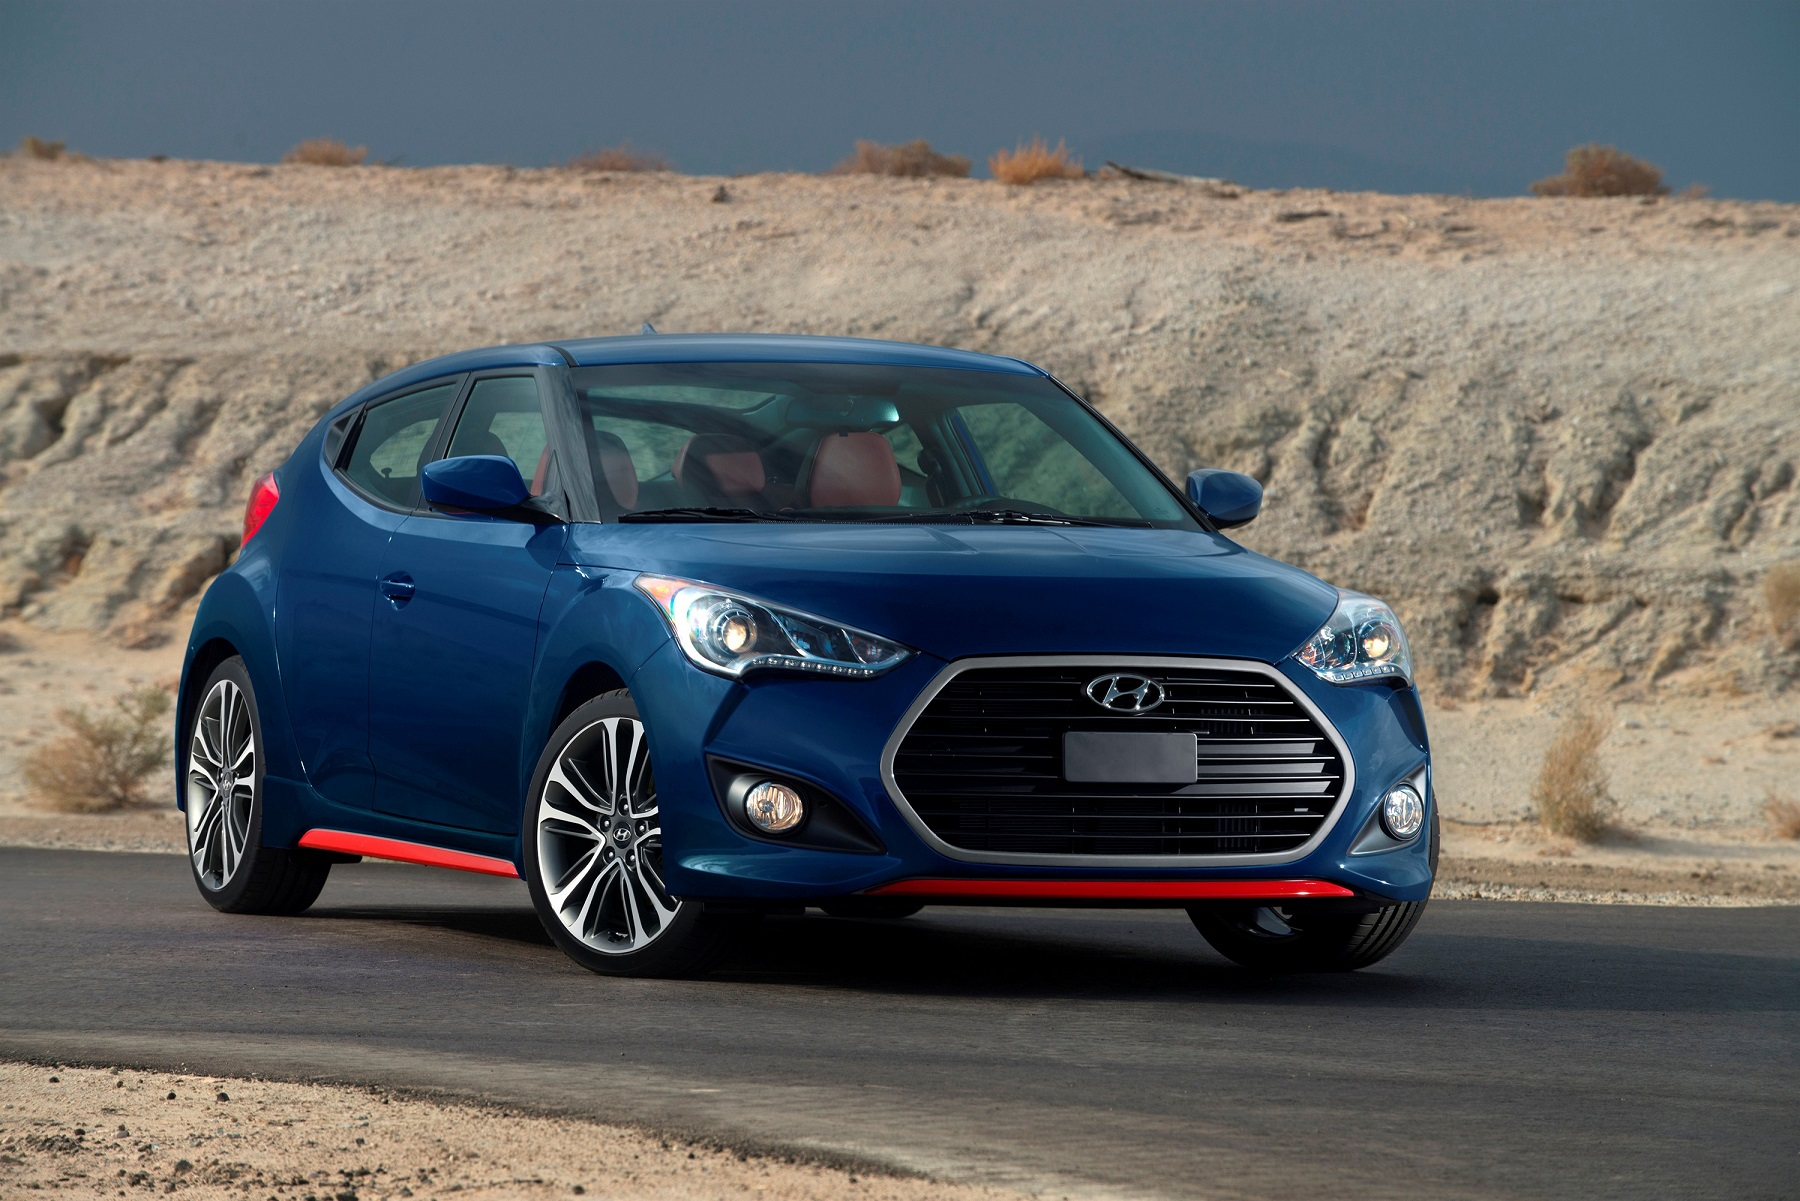 2016 Hyundai Veloster R-Spec delivers sports car experience